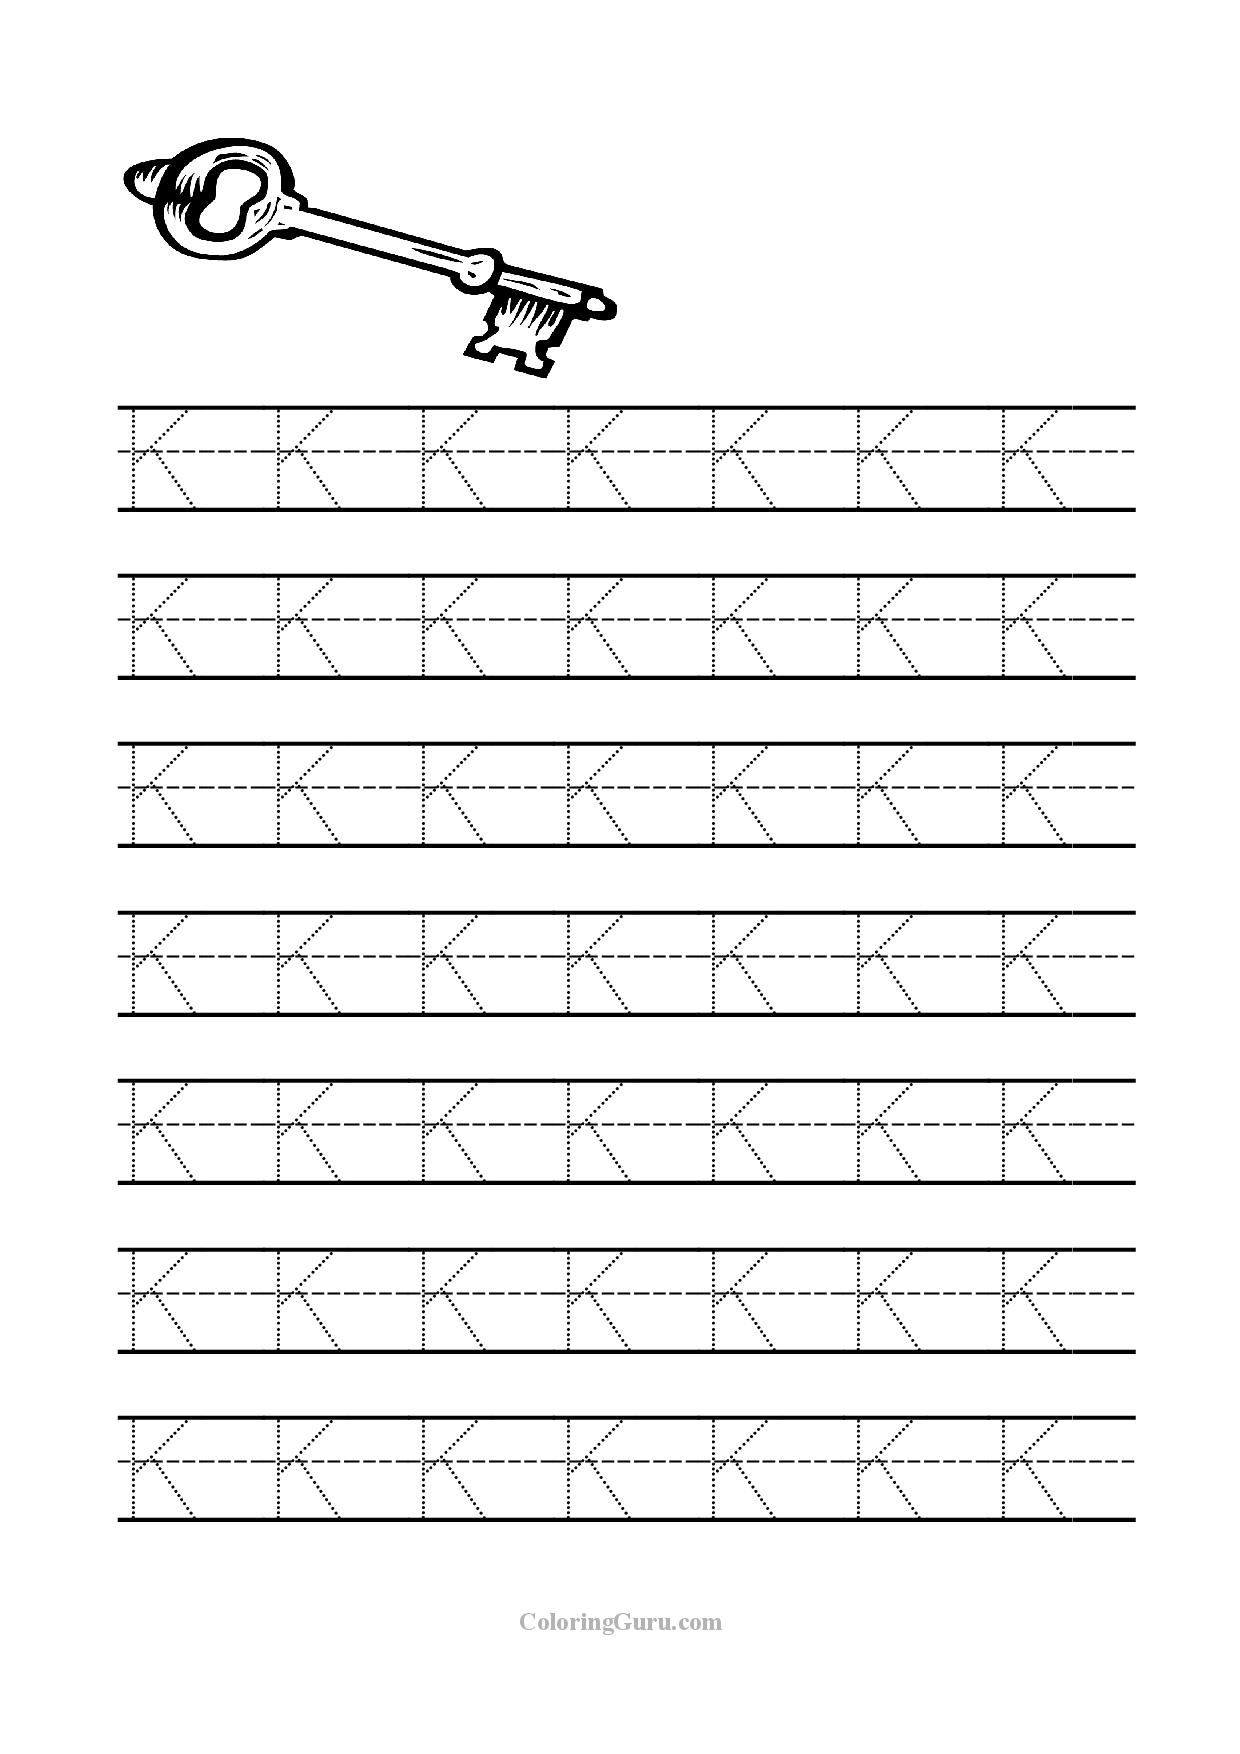 15 Learning the Letter K Worksheets | KittyBabyLove.com